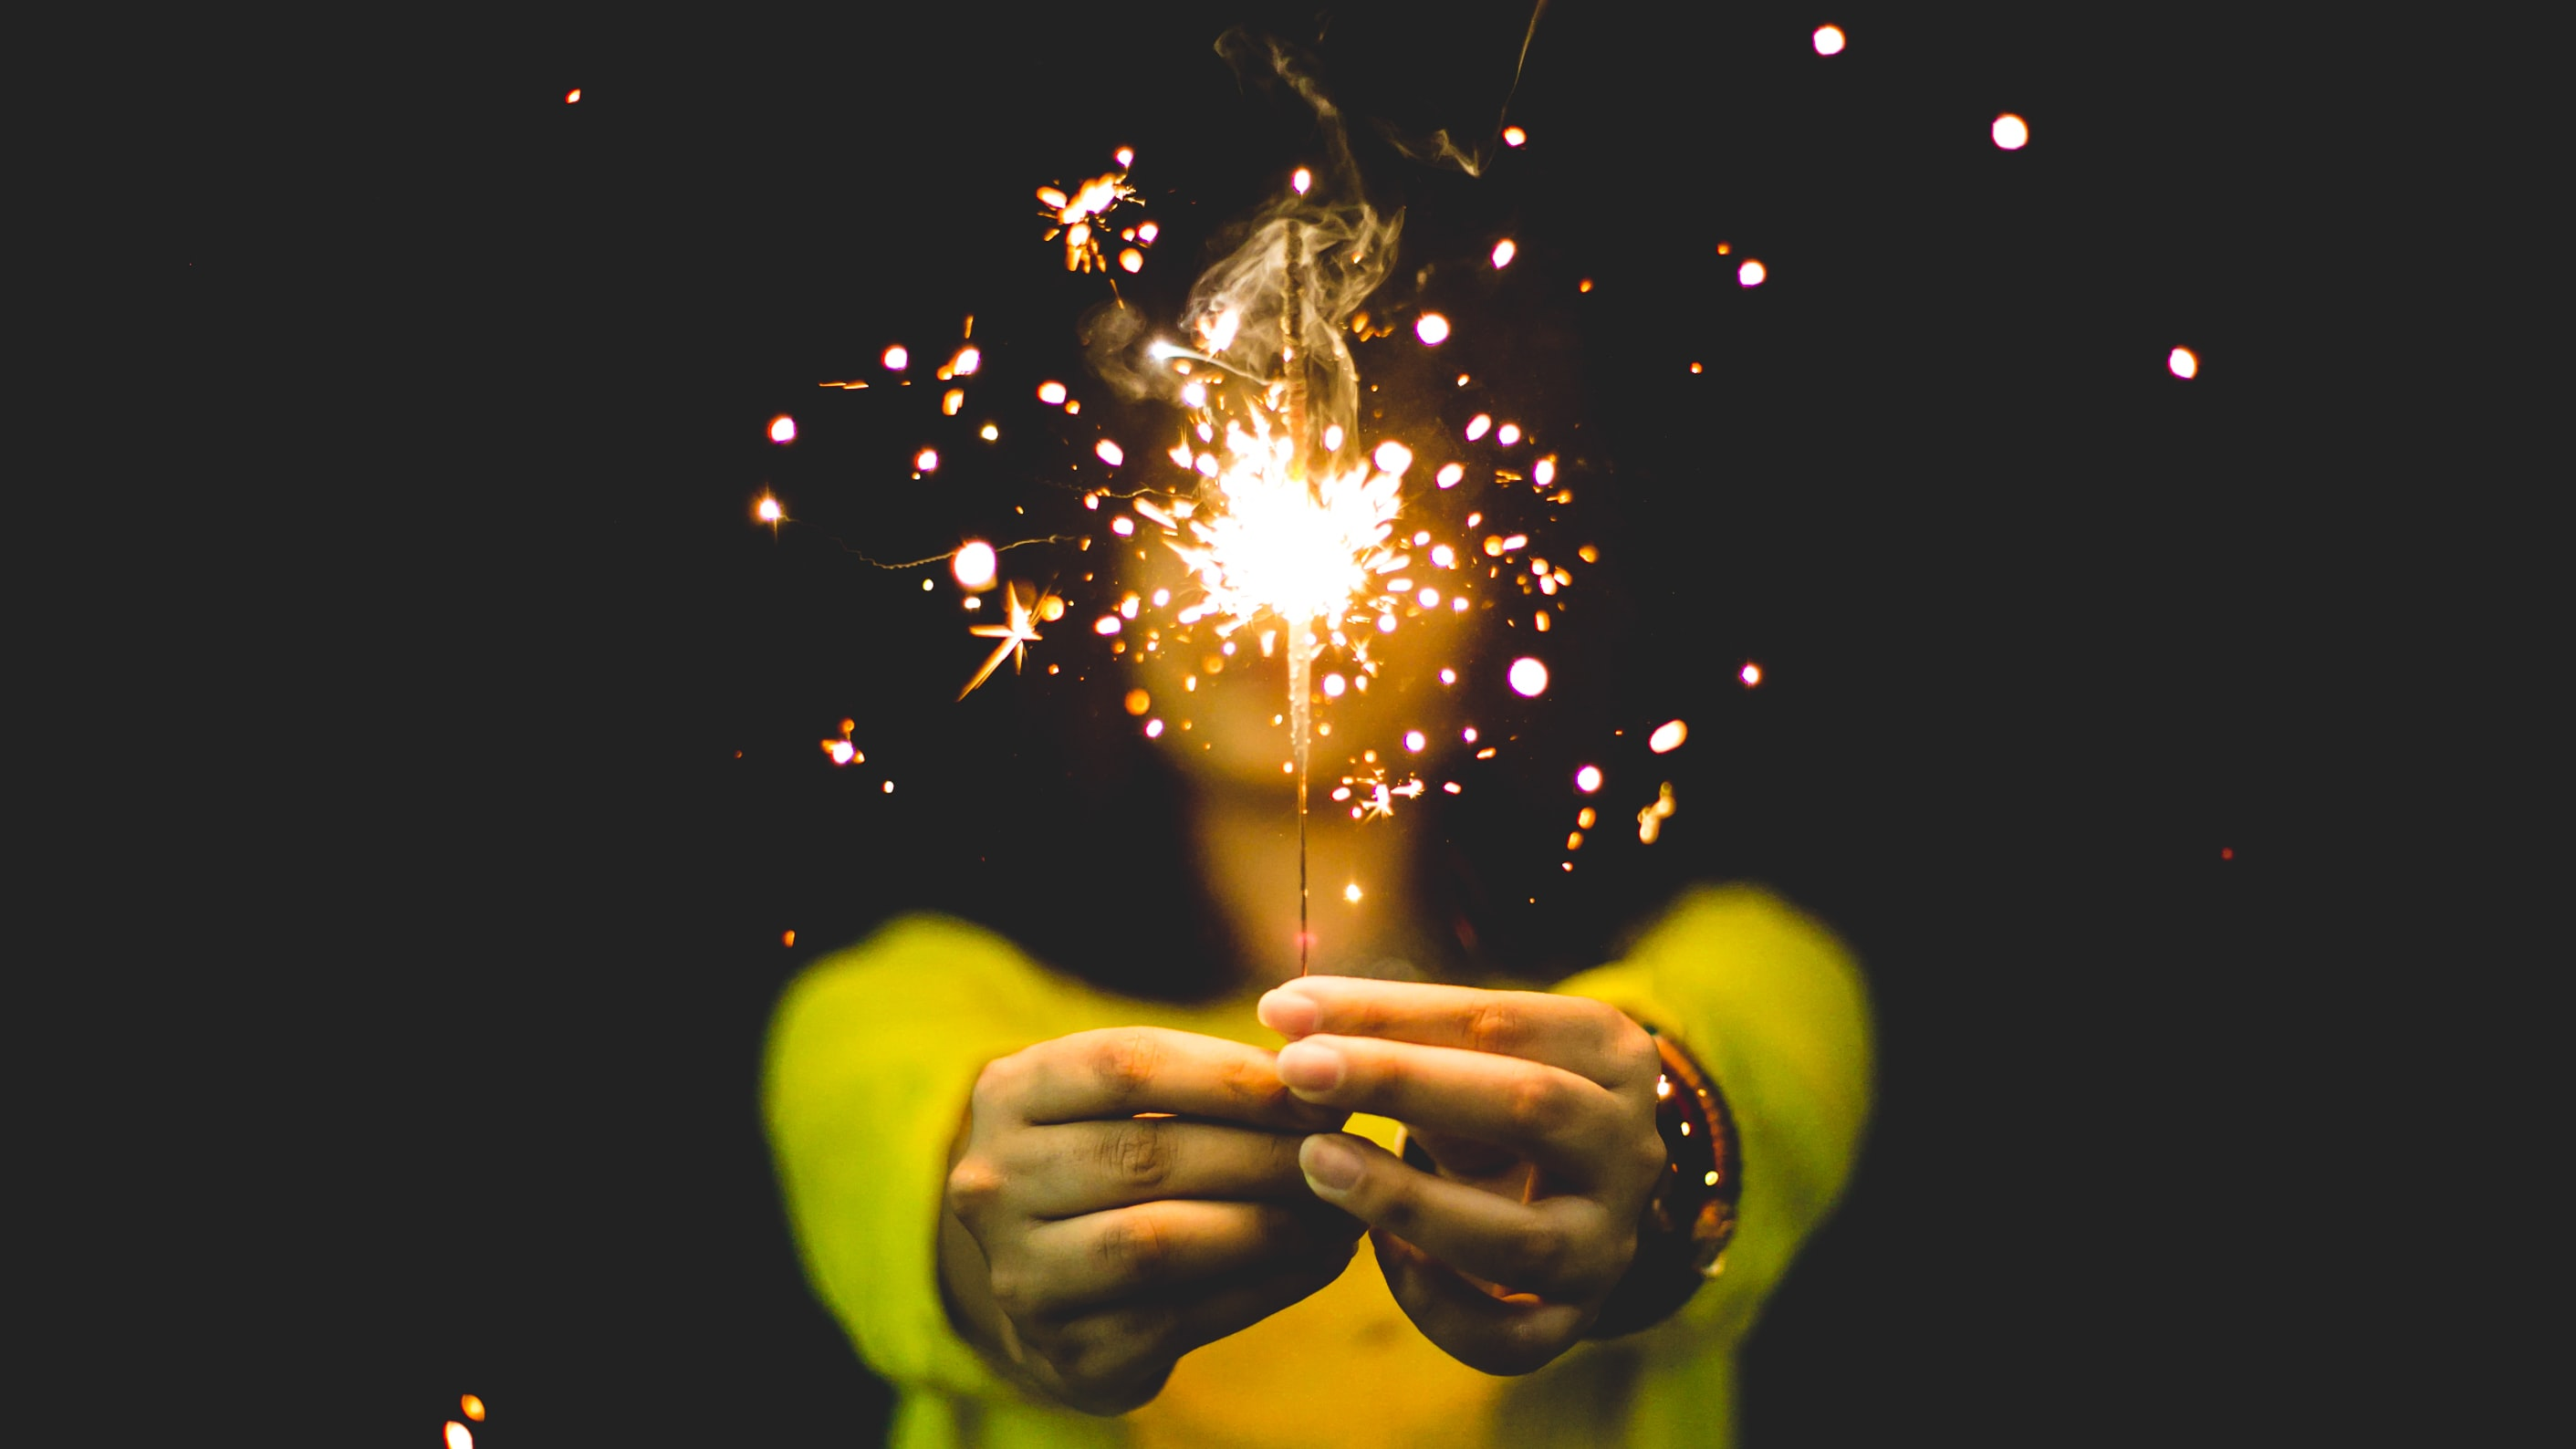 A person holding a lit sparkler in front of them